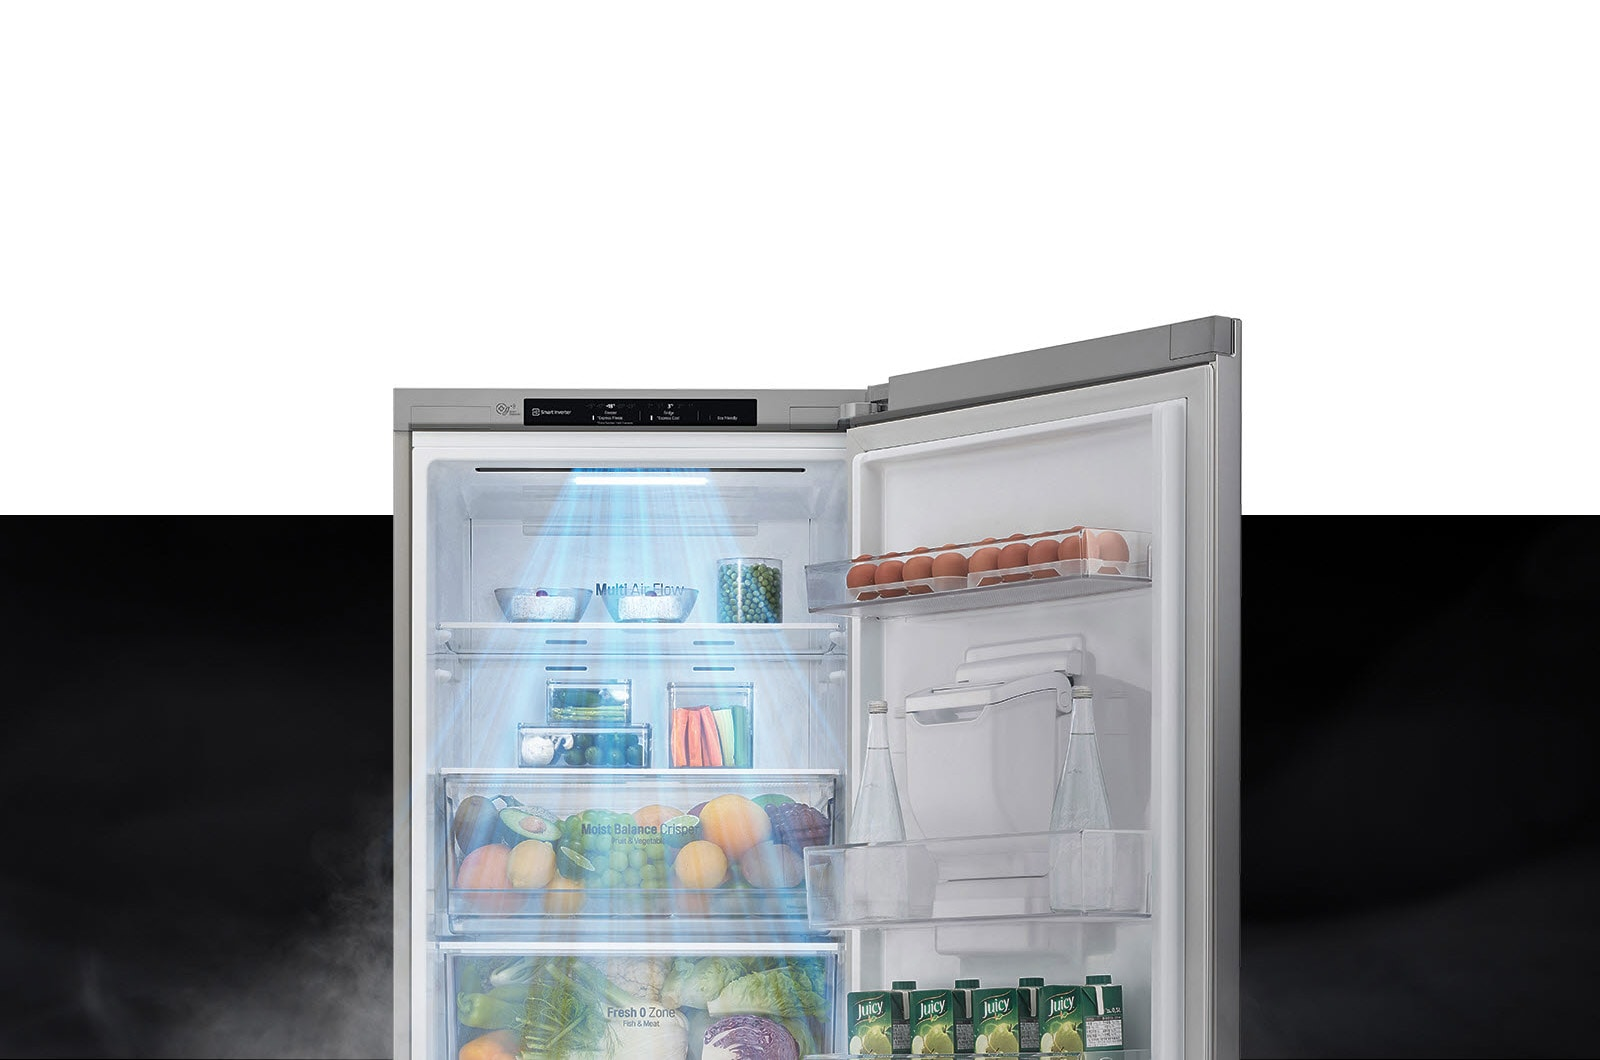 The top half of the refrigerator is shown with the door open. Inside, the shelves are filled with produce and drinks and a gust of wind comes down from the top to cool off the food.